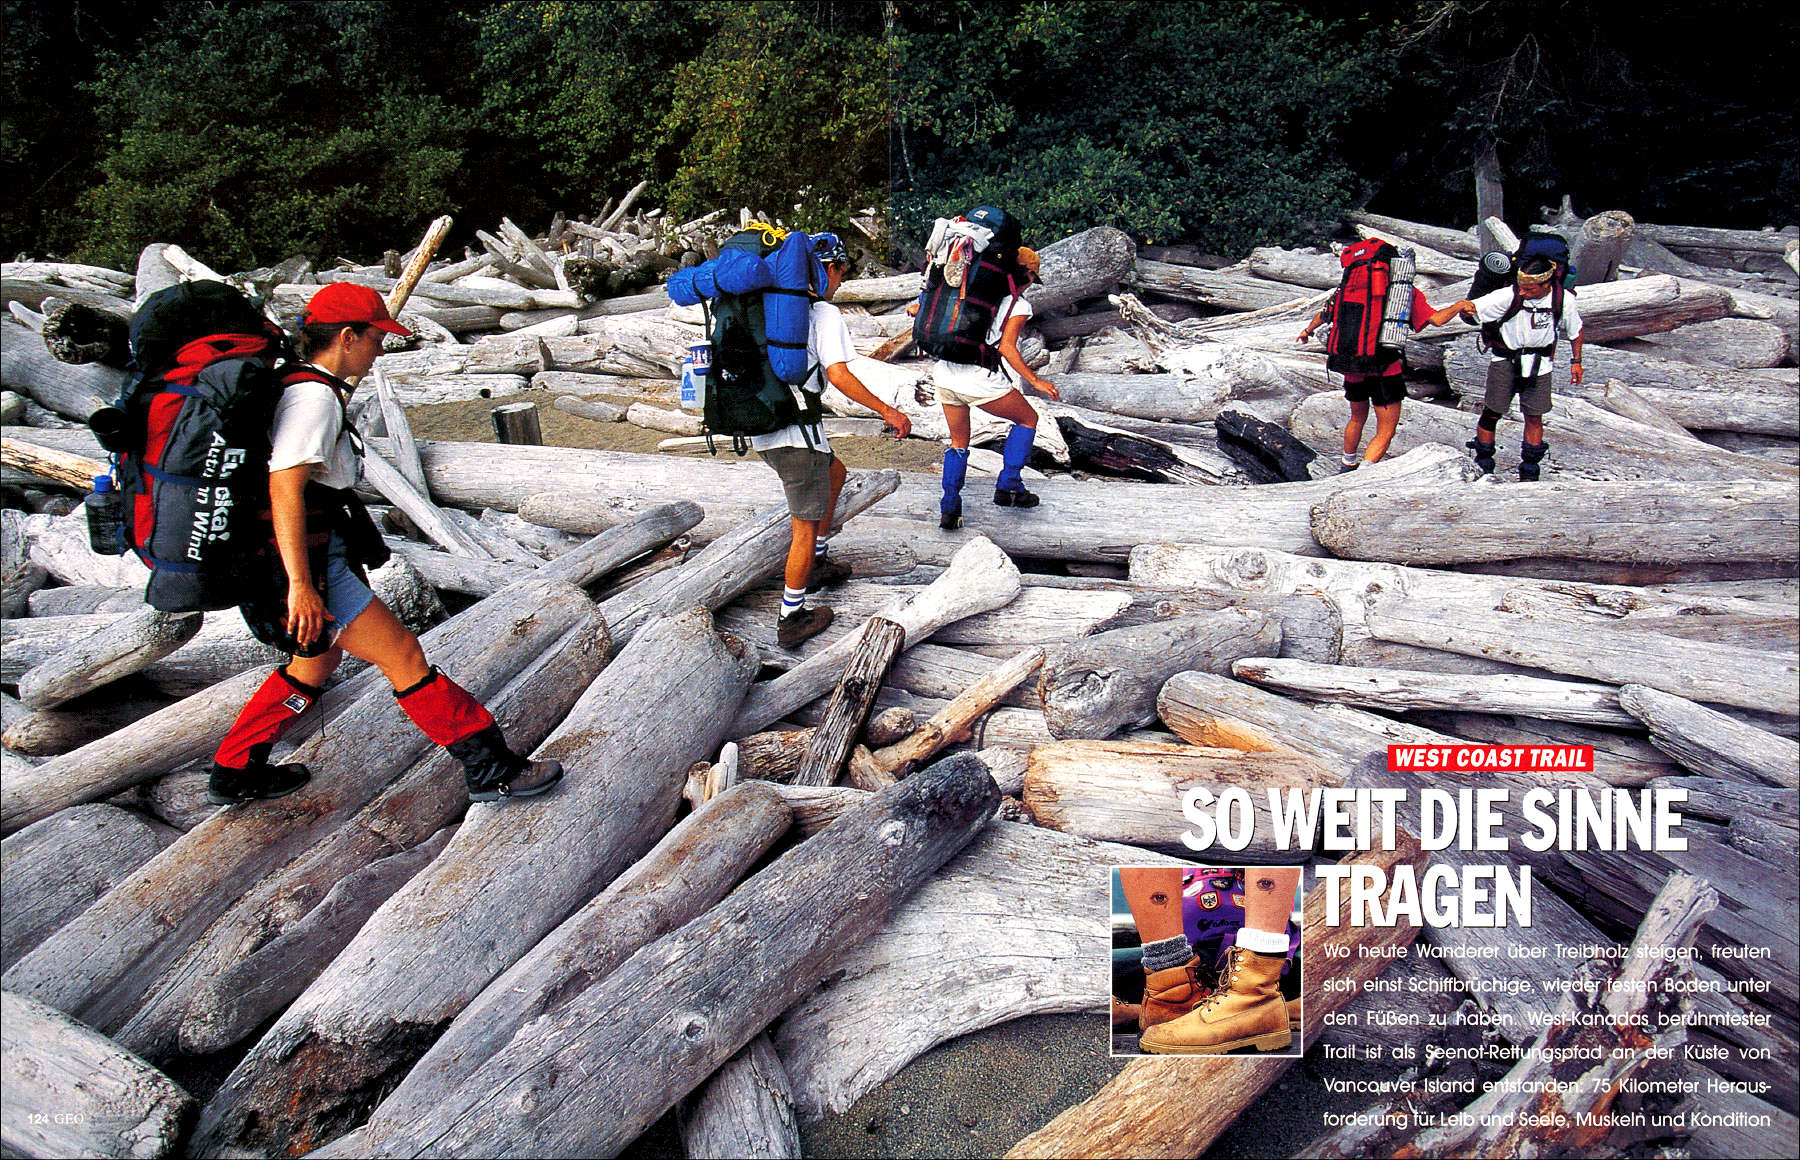 Published_West-Coast-Trail_GEO-Magazine_01